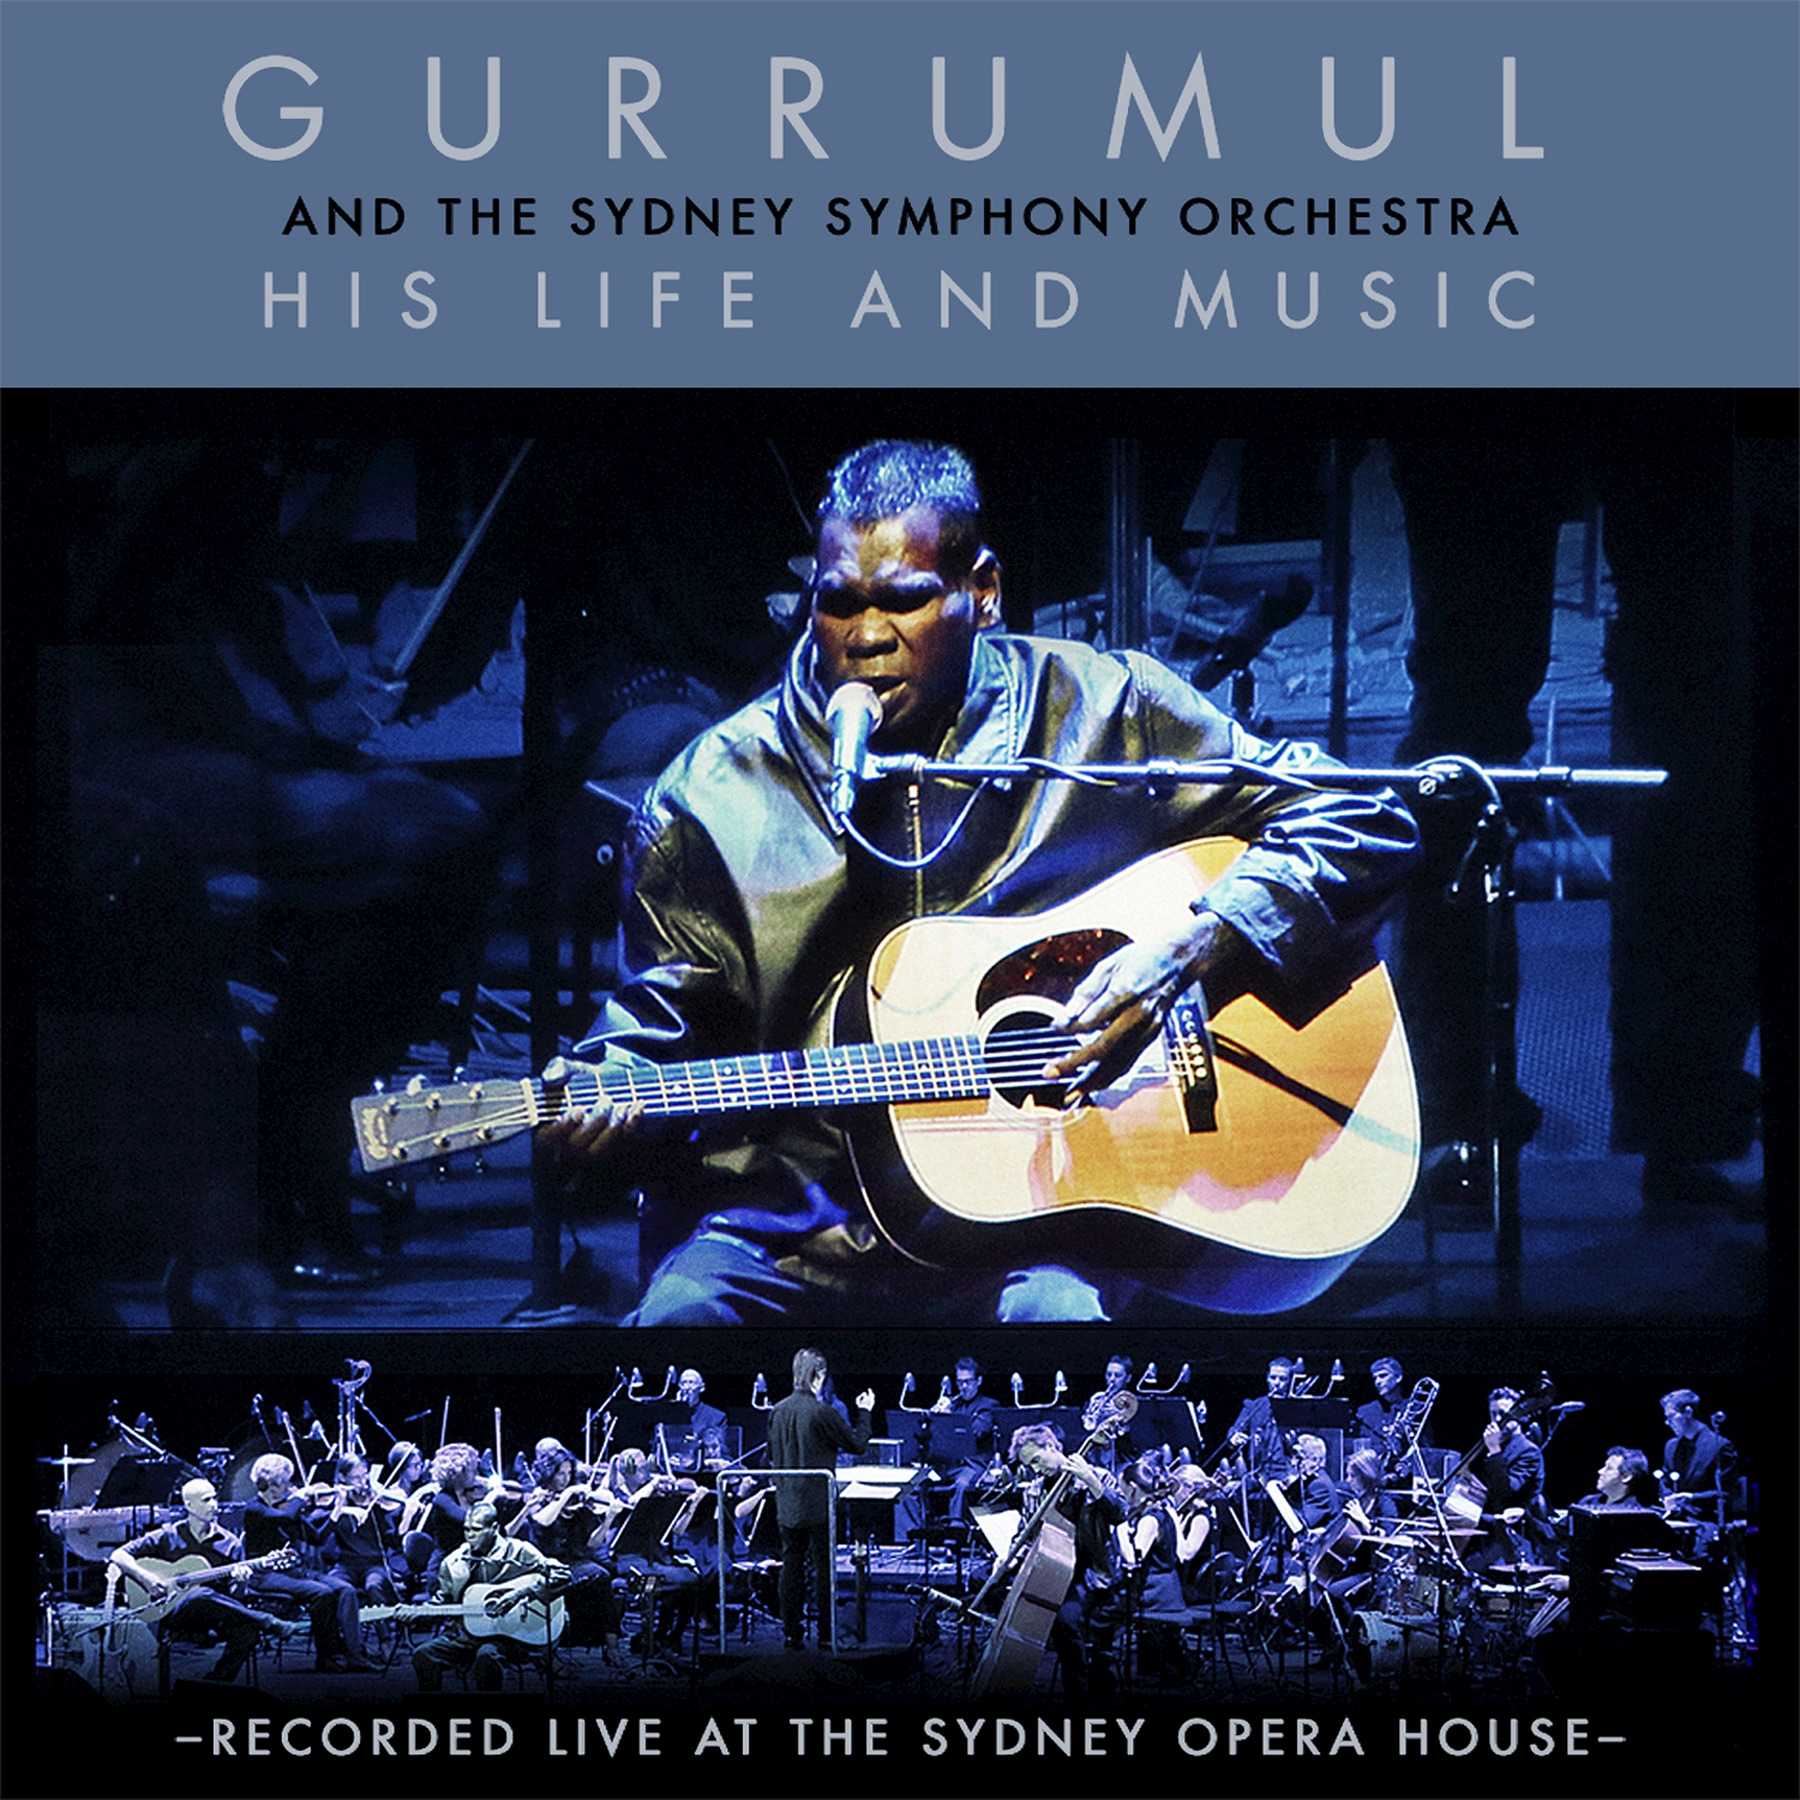 MP3 Songs Online:♫ Djilawurr (Live) - Geoffrey Gurrumul Yunupingu album His Life and Music (Live). World,Music,Rock listen to music online free without downloading.